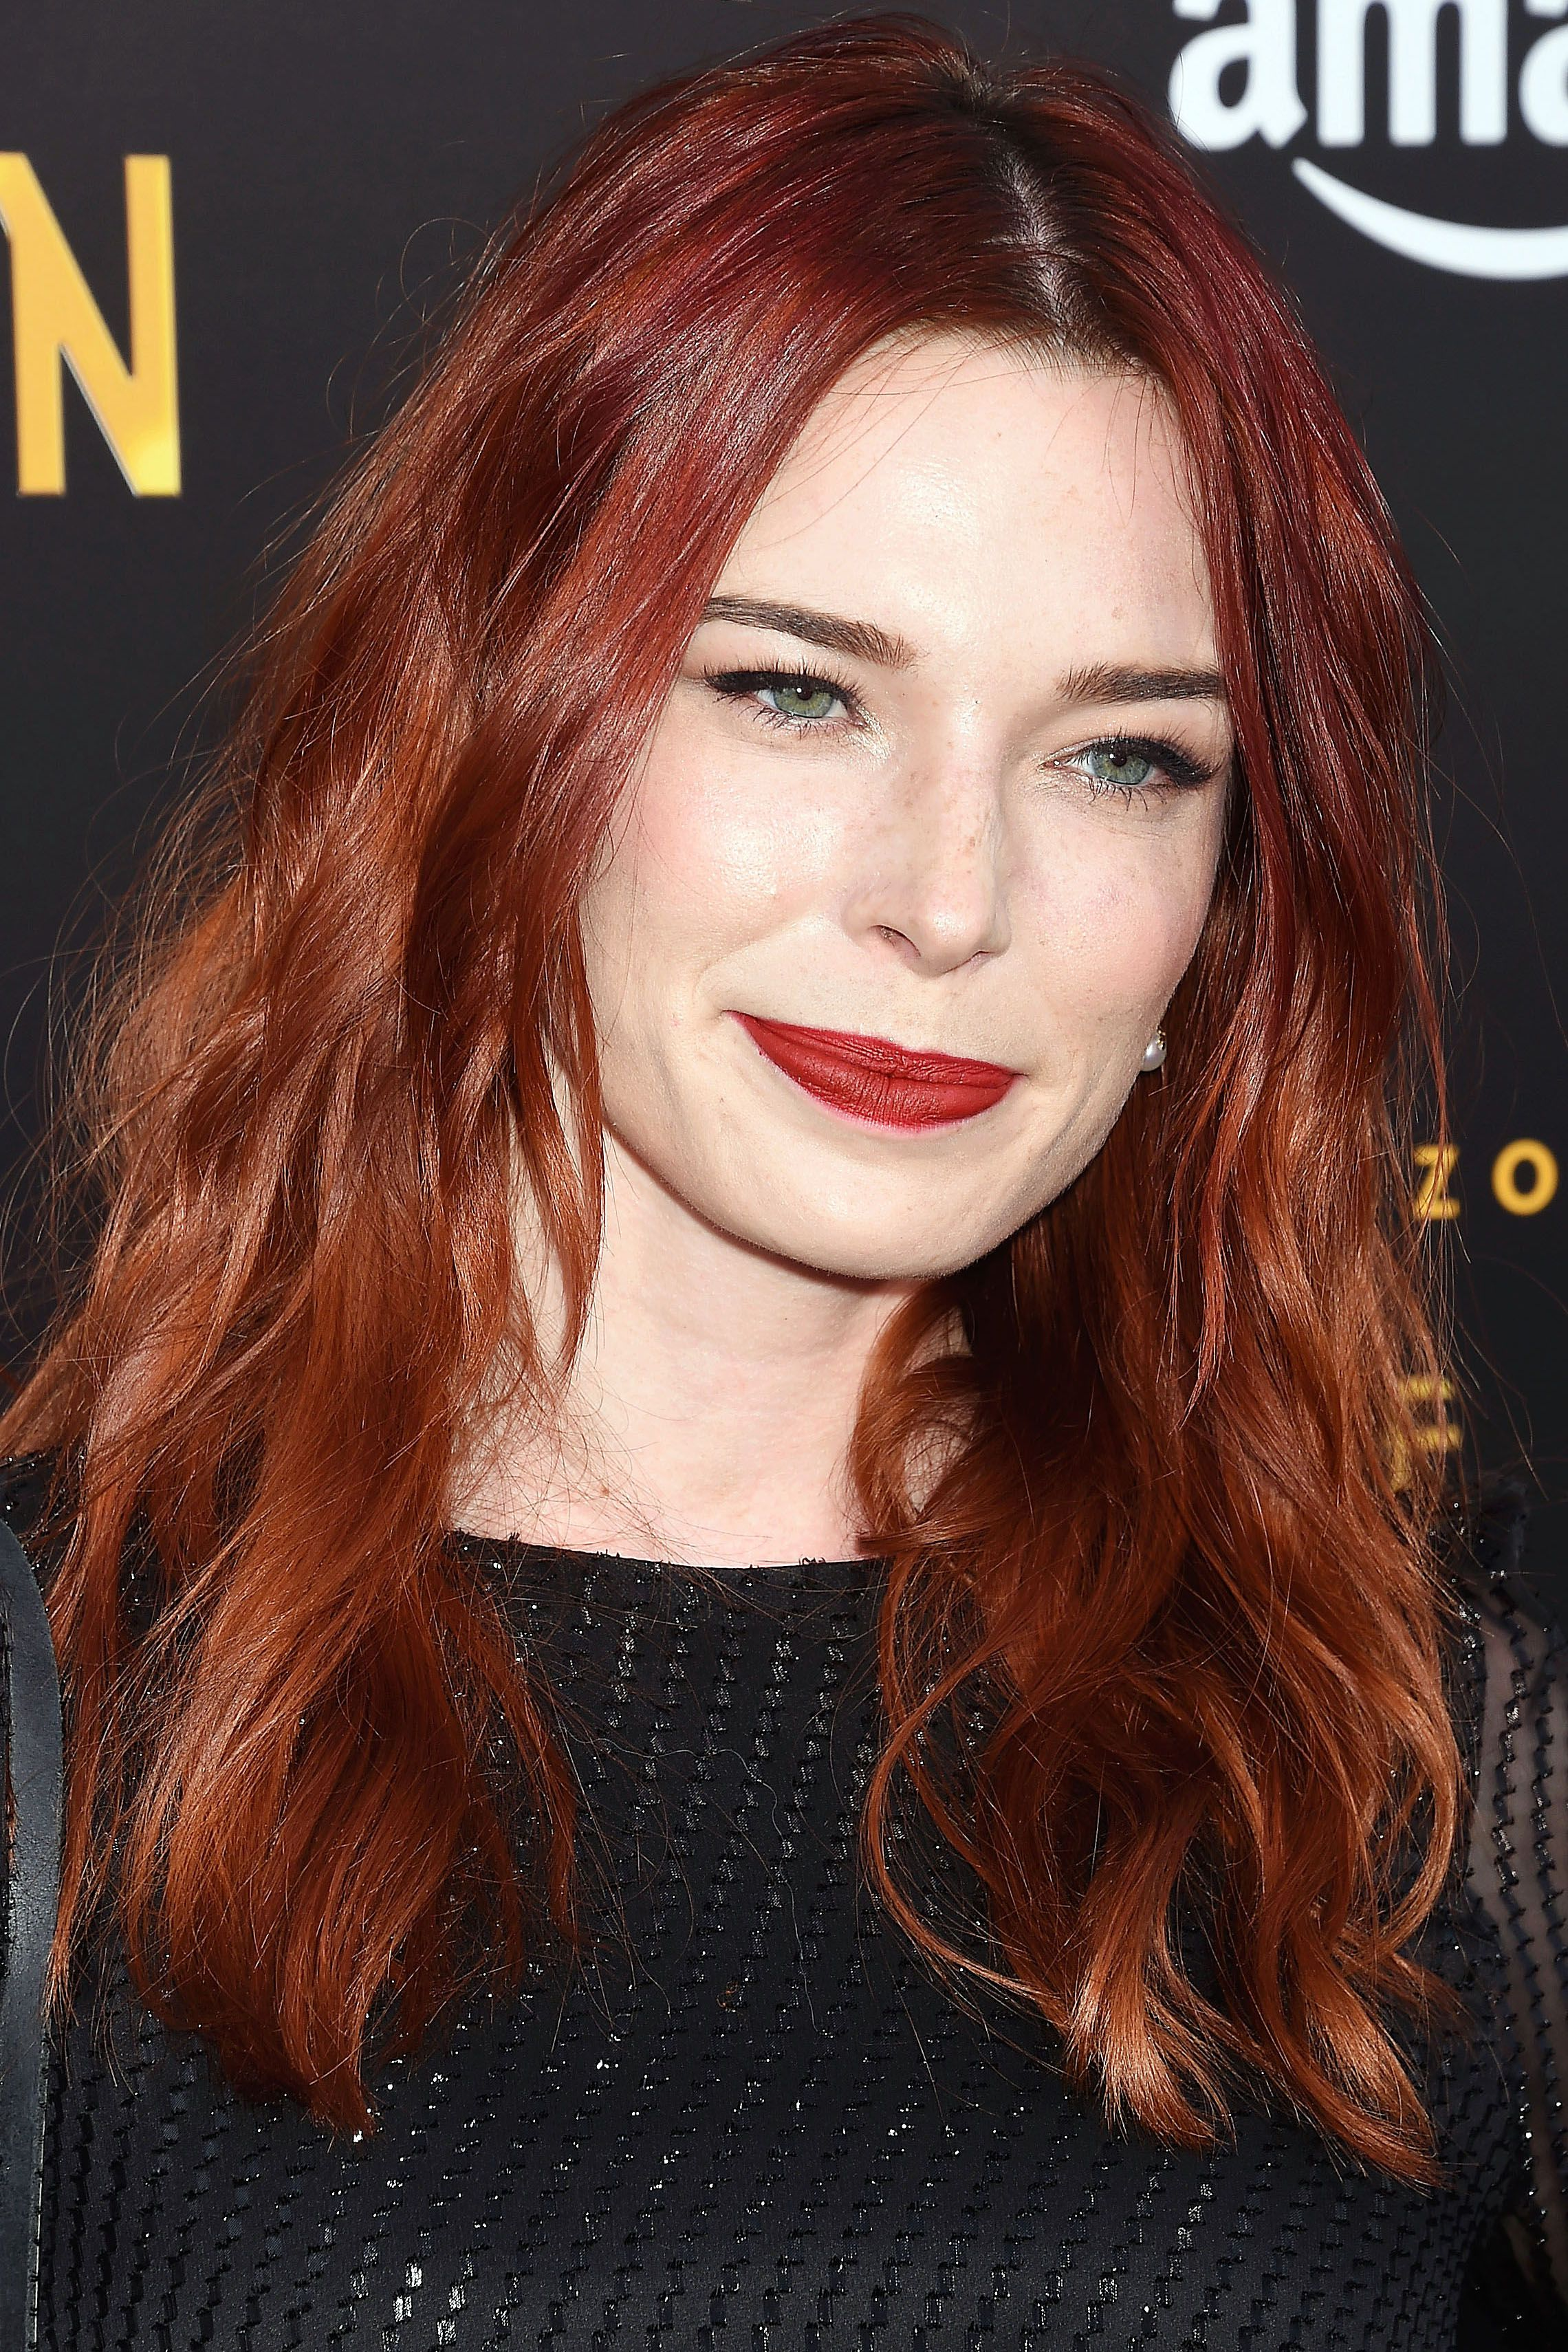 Christmas Colored Hair With 27 Red Color Shade Ideas For 2018 Famous Redhead Celebrities